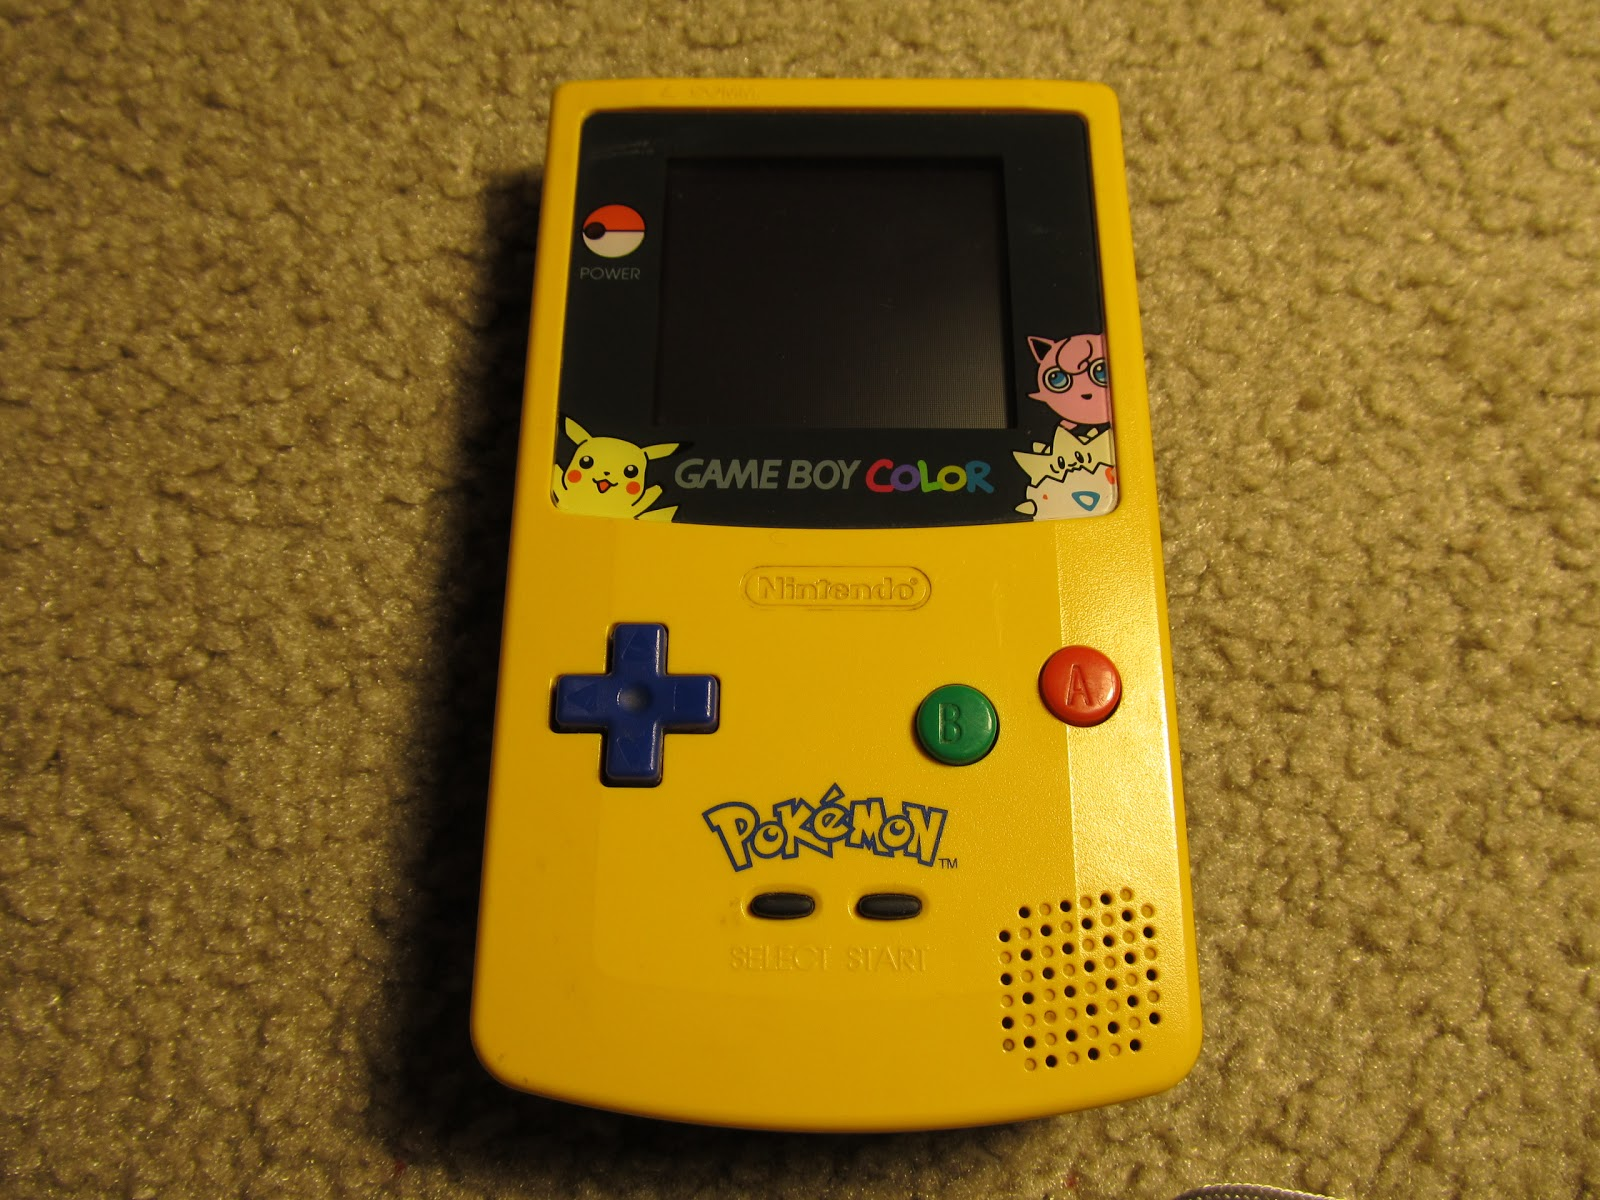 Gameboy color and pokemon yellow - Gameboy Color And Pokemon Yellow 54